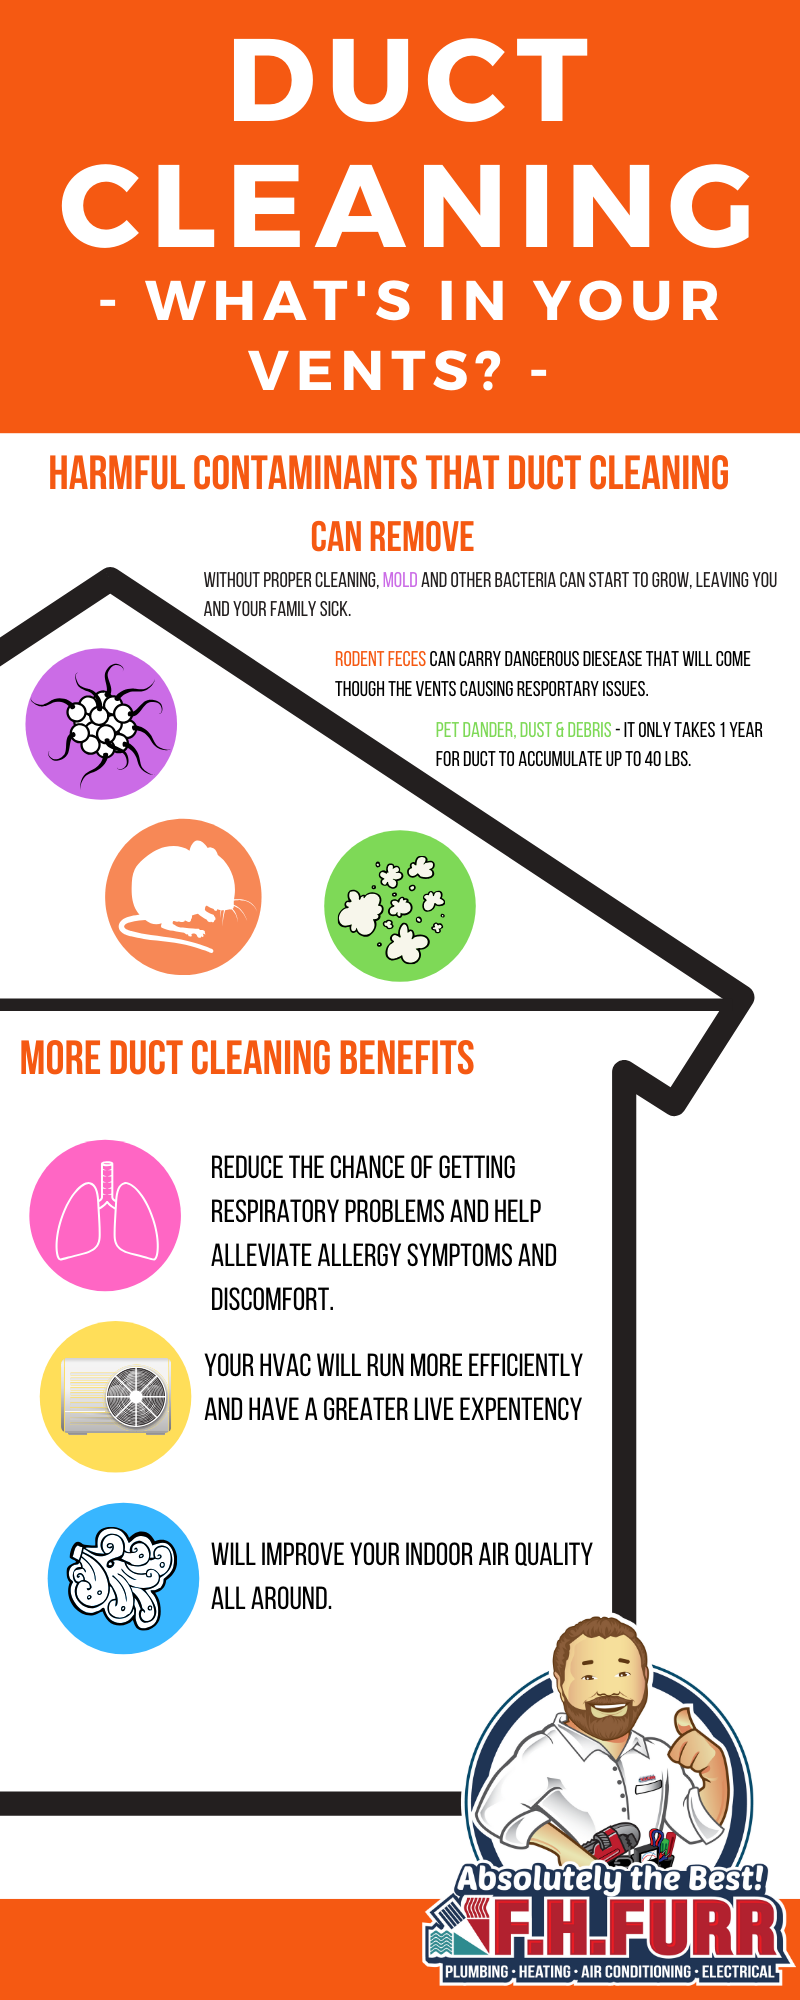 Duct cleaning - Whats in Your vents? -